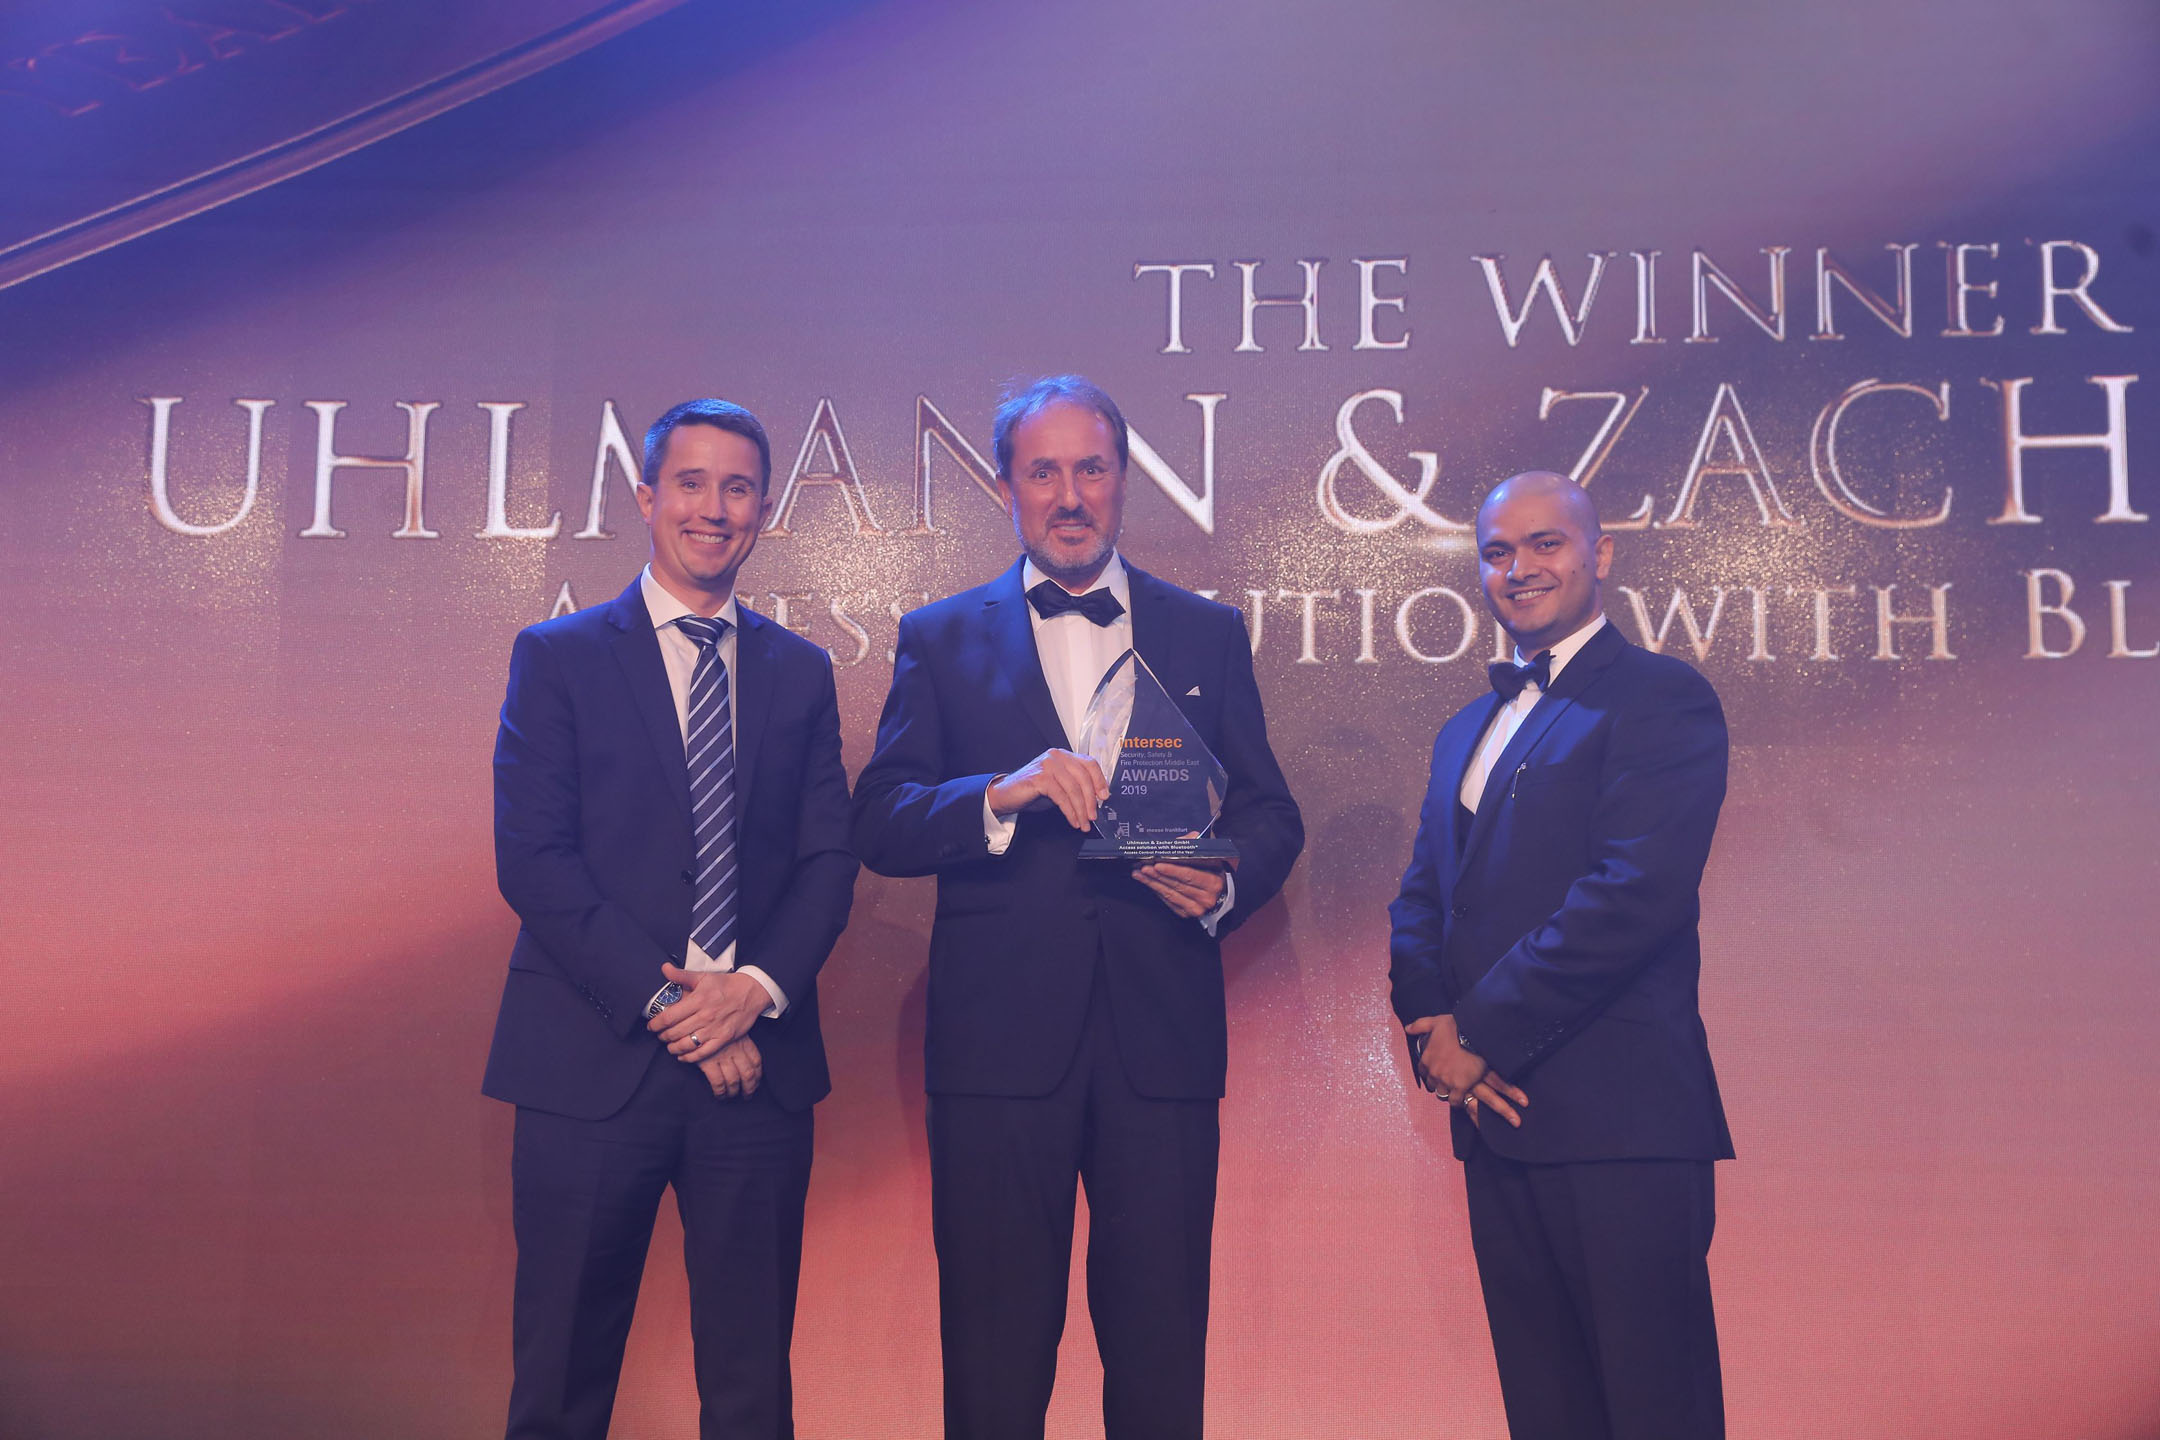 Uhlmann for Access Control Project of the Year